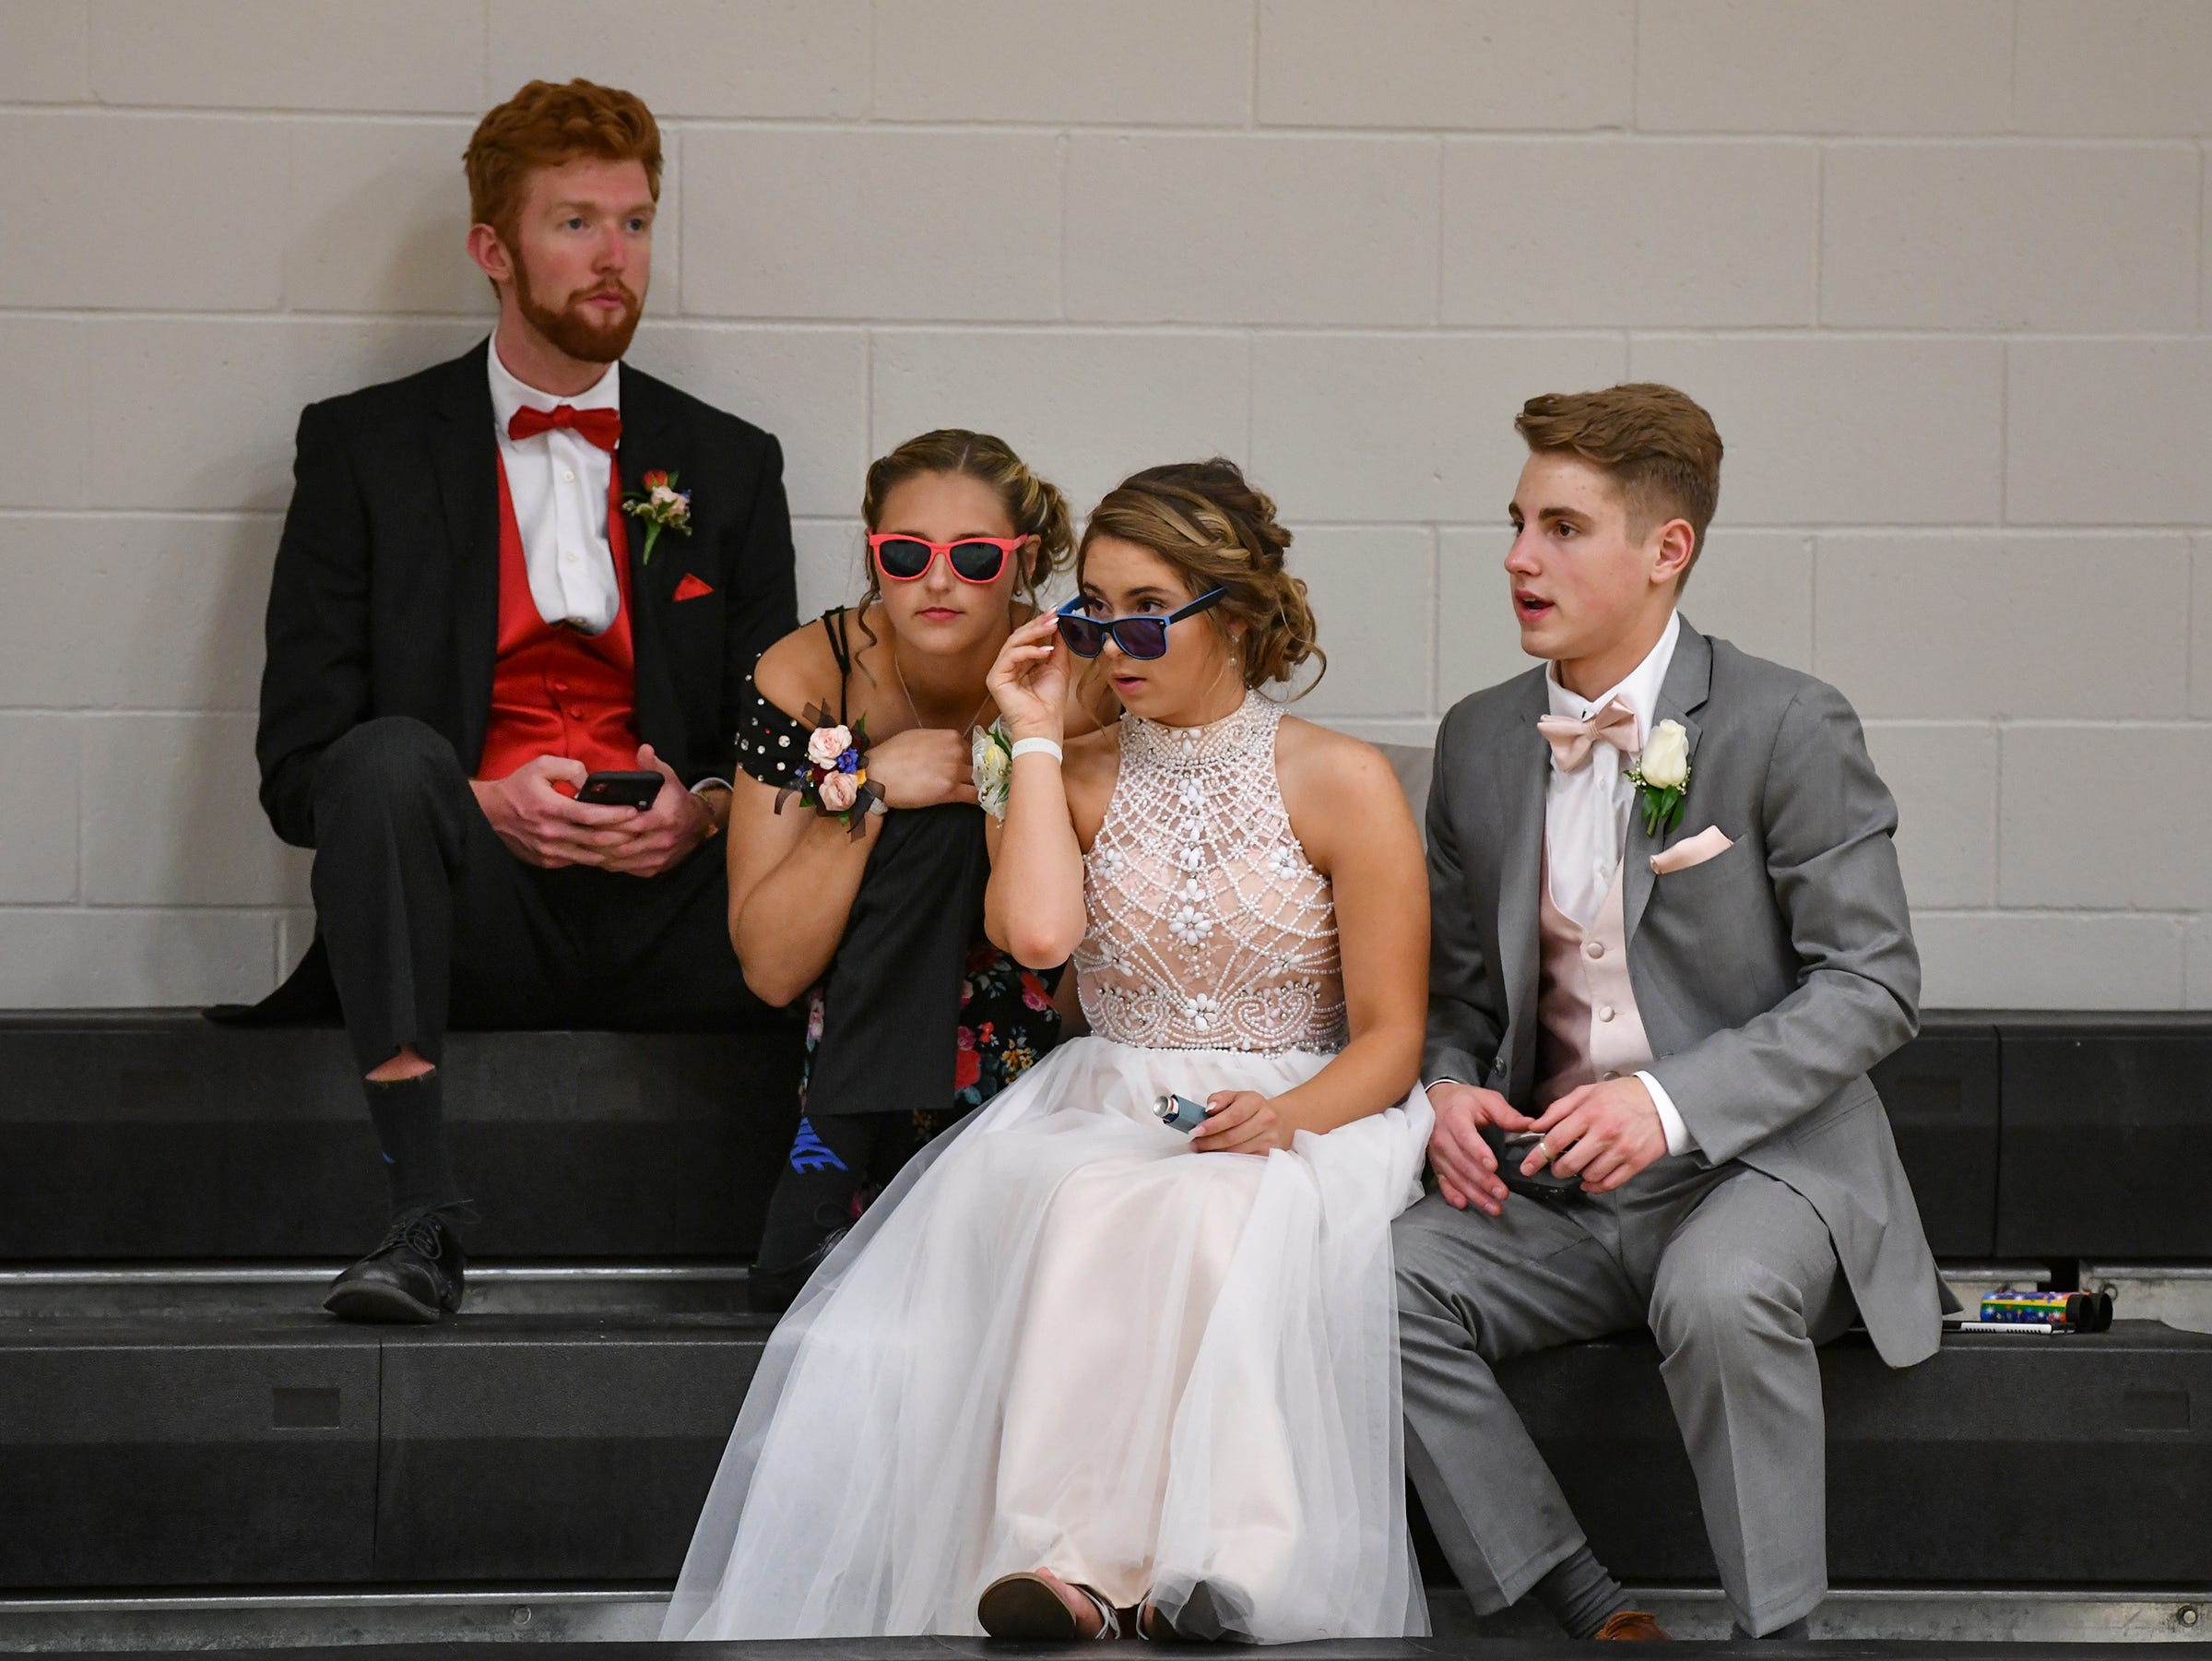 Mitchell Lochner, Halie Kipka, Abby Trelfa and Dan Fleigle wait for grand march to start Saturday, May 11, at Sauk Rapids-Rice High School.